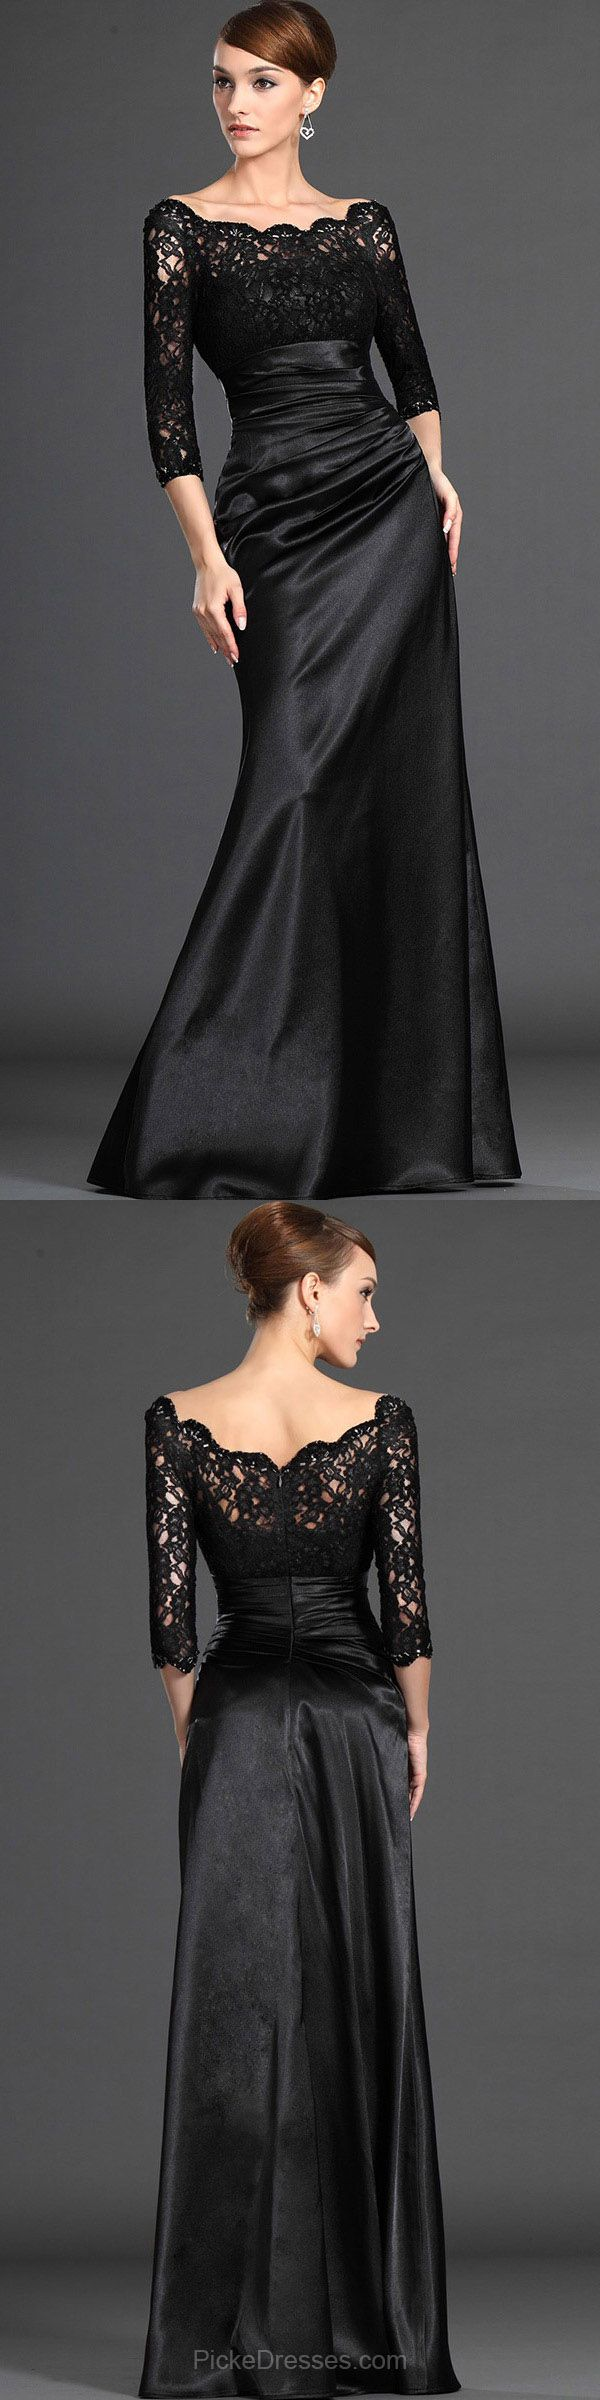 Long Prom Dresses Lace, Black Prom Dresses Mermaid 2018,  Scalloped Neck Evening Formal Party Dresses Satin with Ruffles